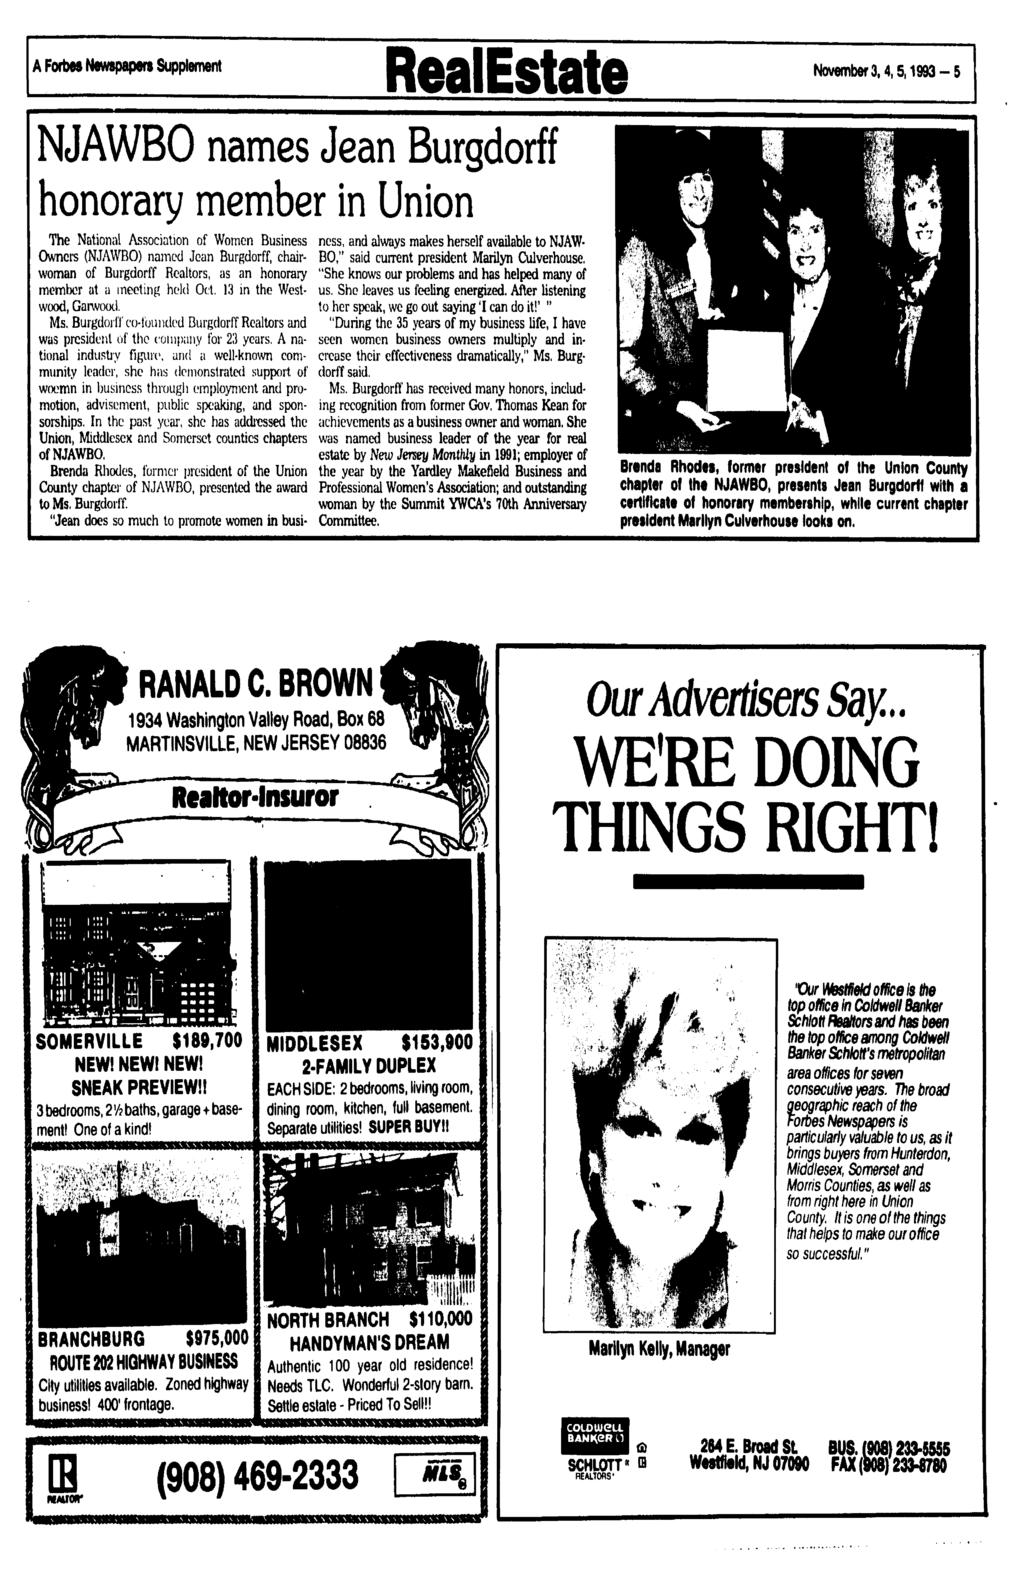 A Forbes Newspapers Supplement RealEstate November3,4,5,1993-5 NJAWBO names Jean Burgdorff honorary member in Union The National Association of Women Business Owners (NJAWBO) named Jean Burgdorff,